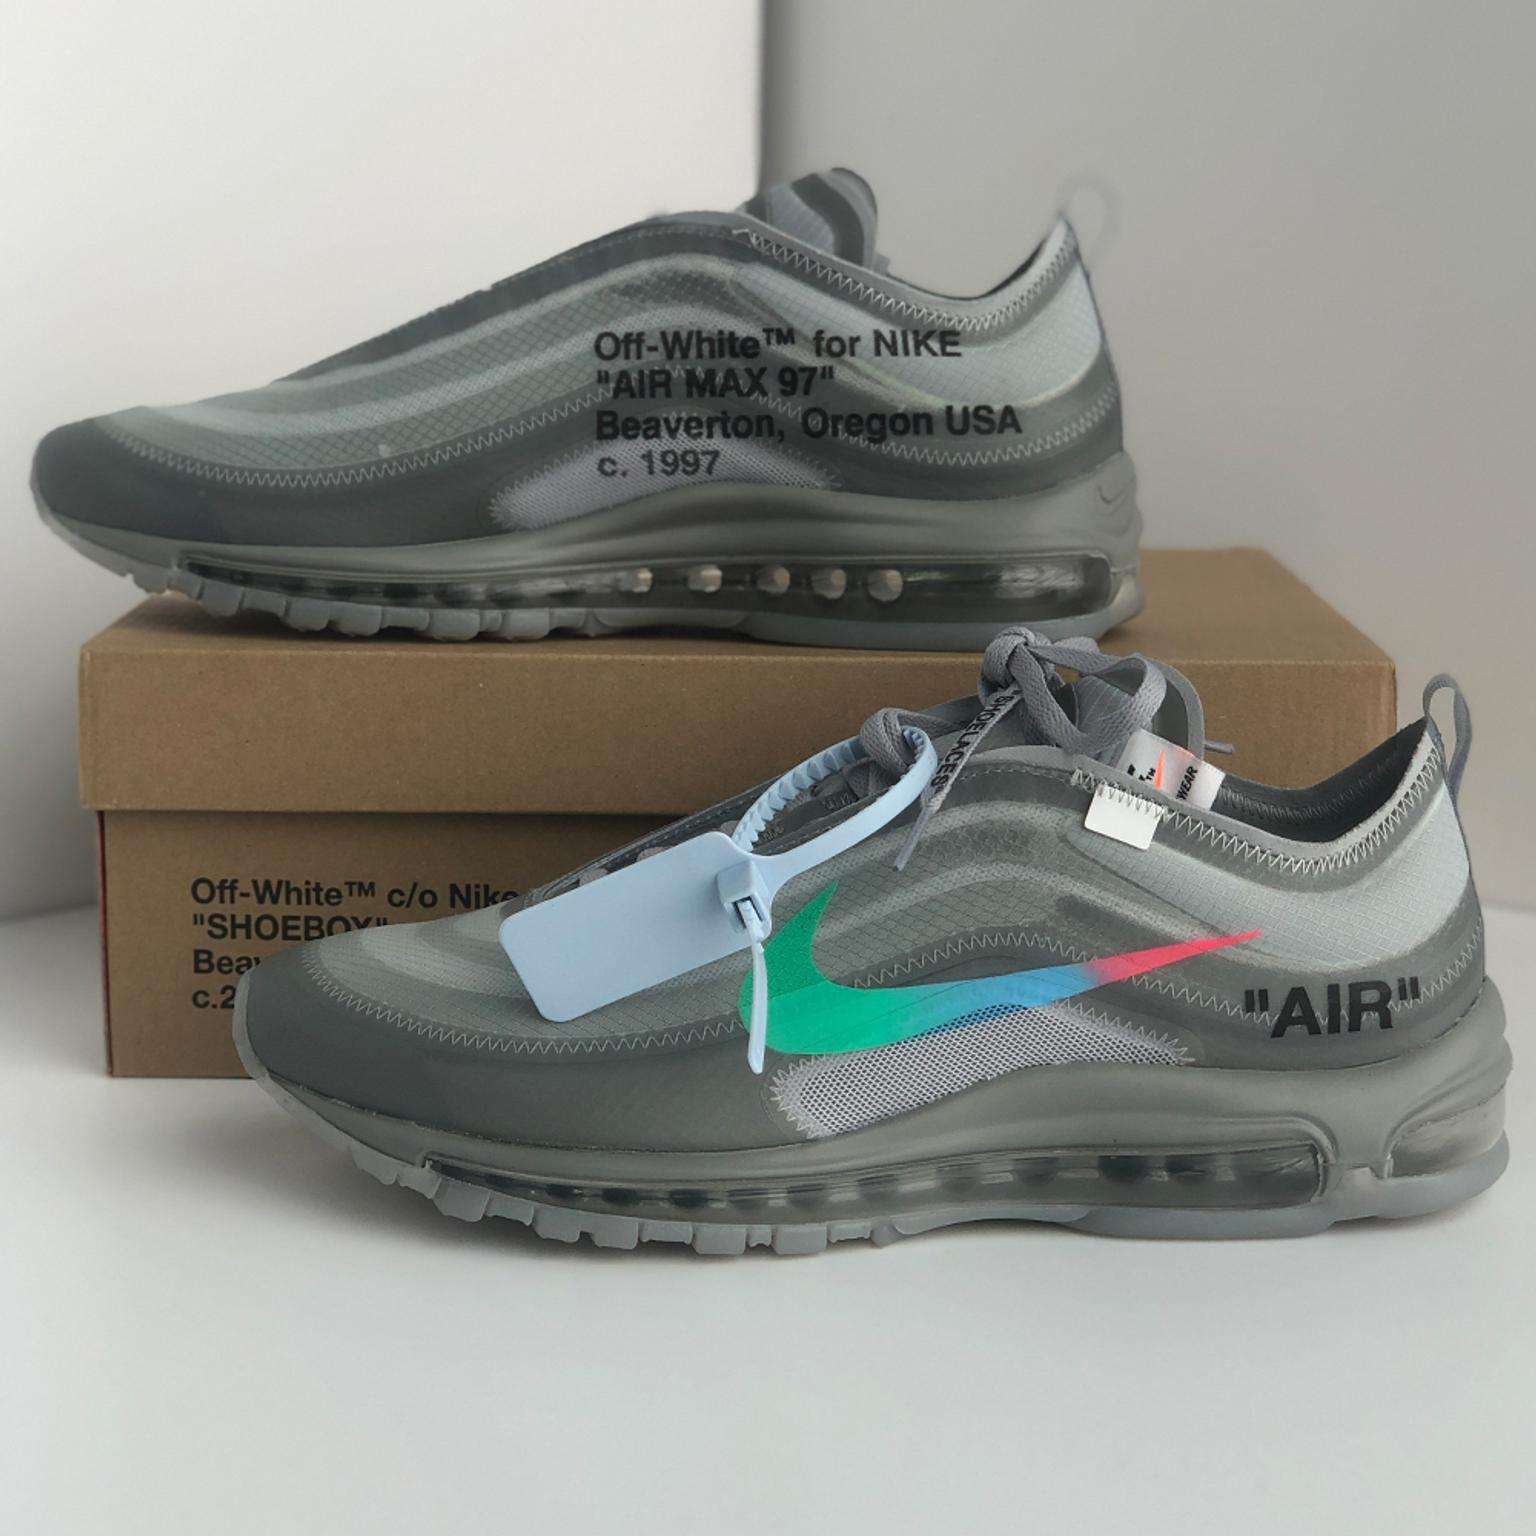 Off-White x Nike Air Max 97 Menta UK 9.5